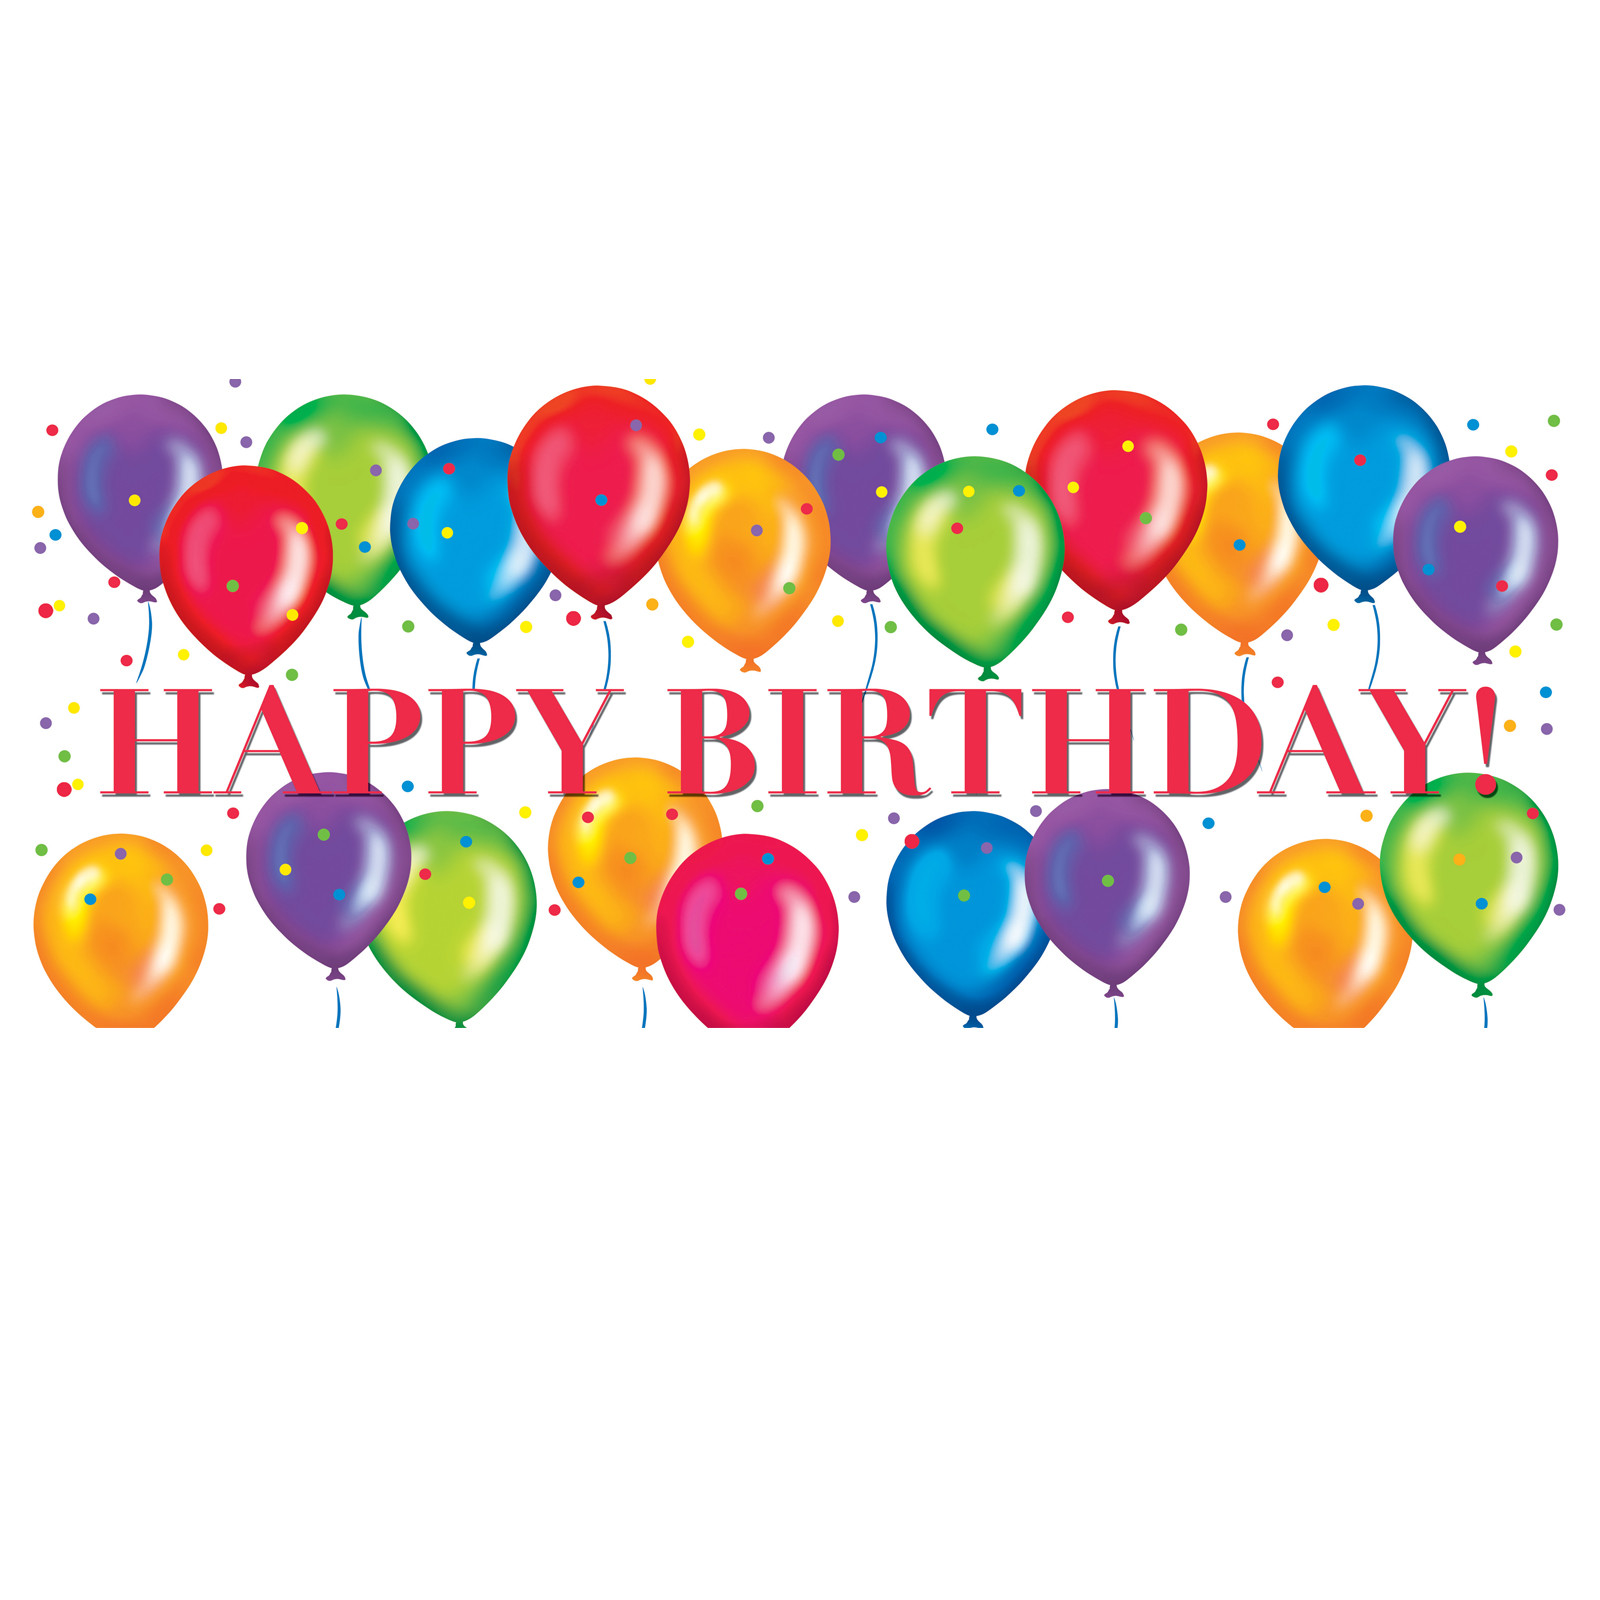 Balloons clipart happy birthday. At getdrawings com free